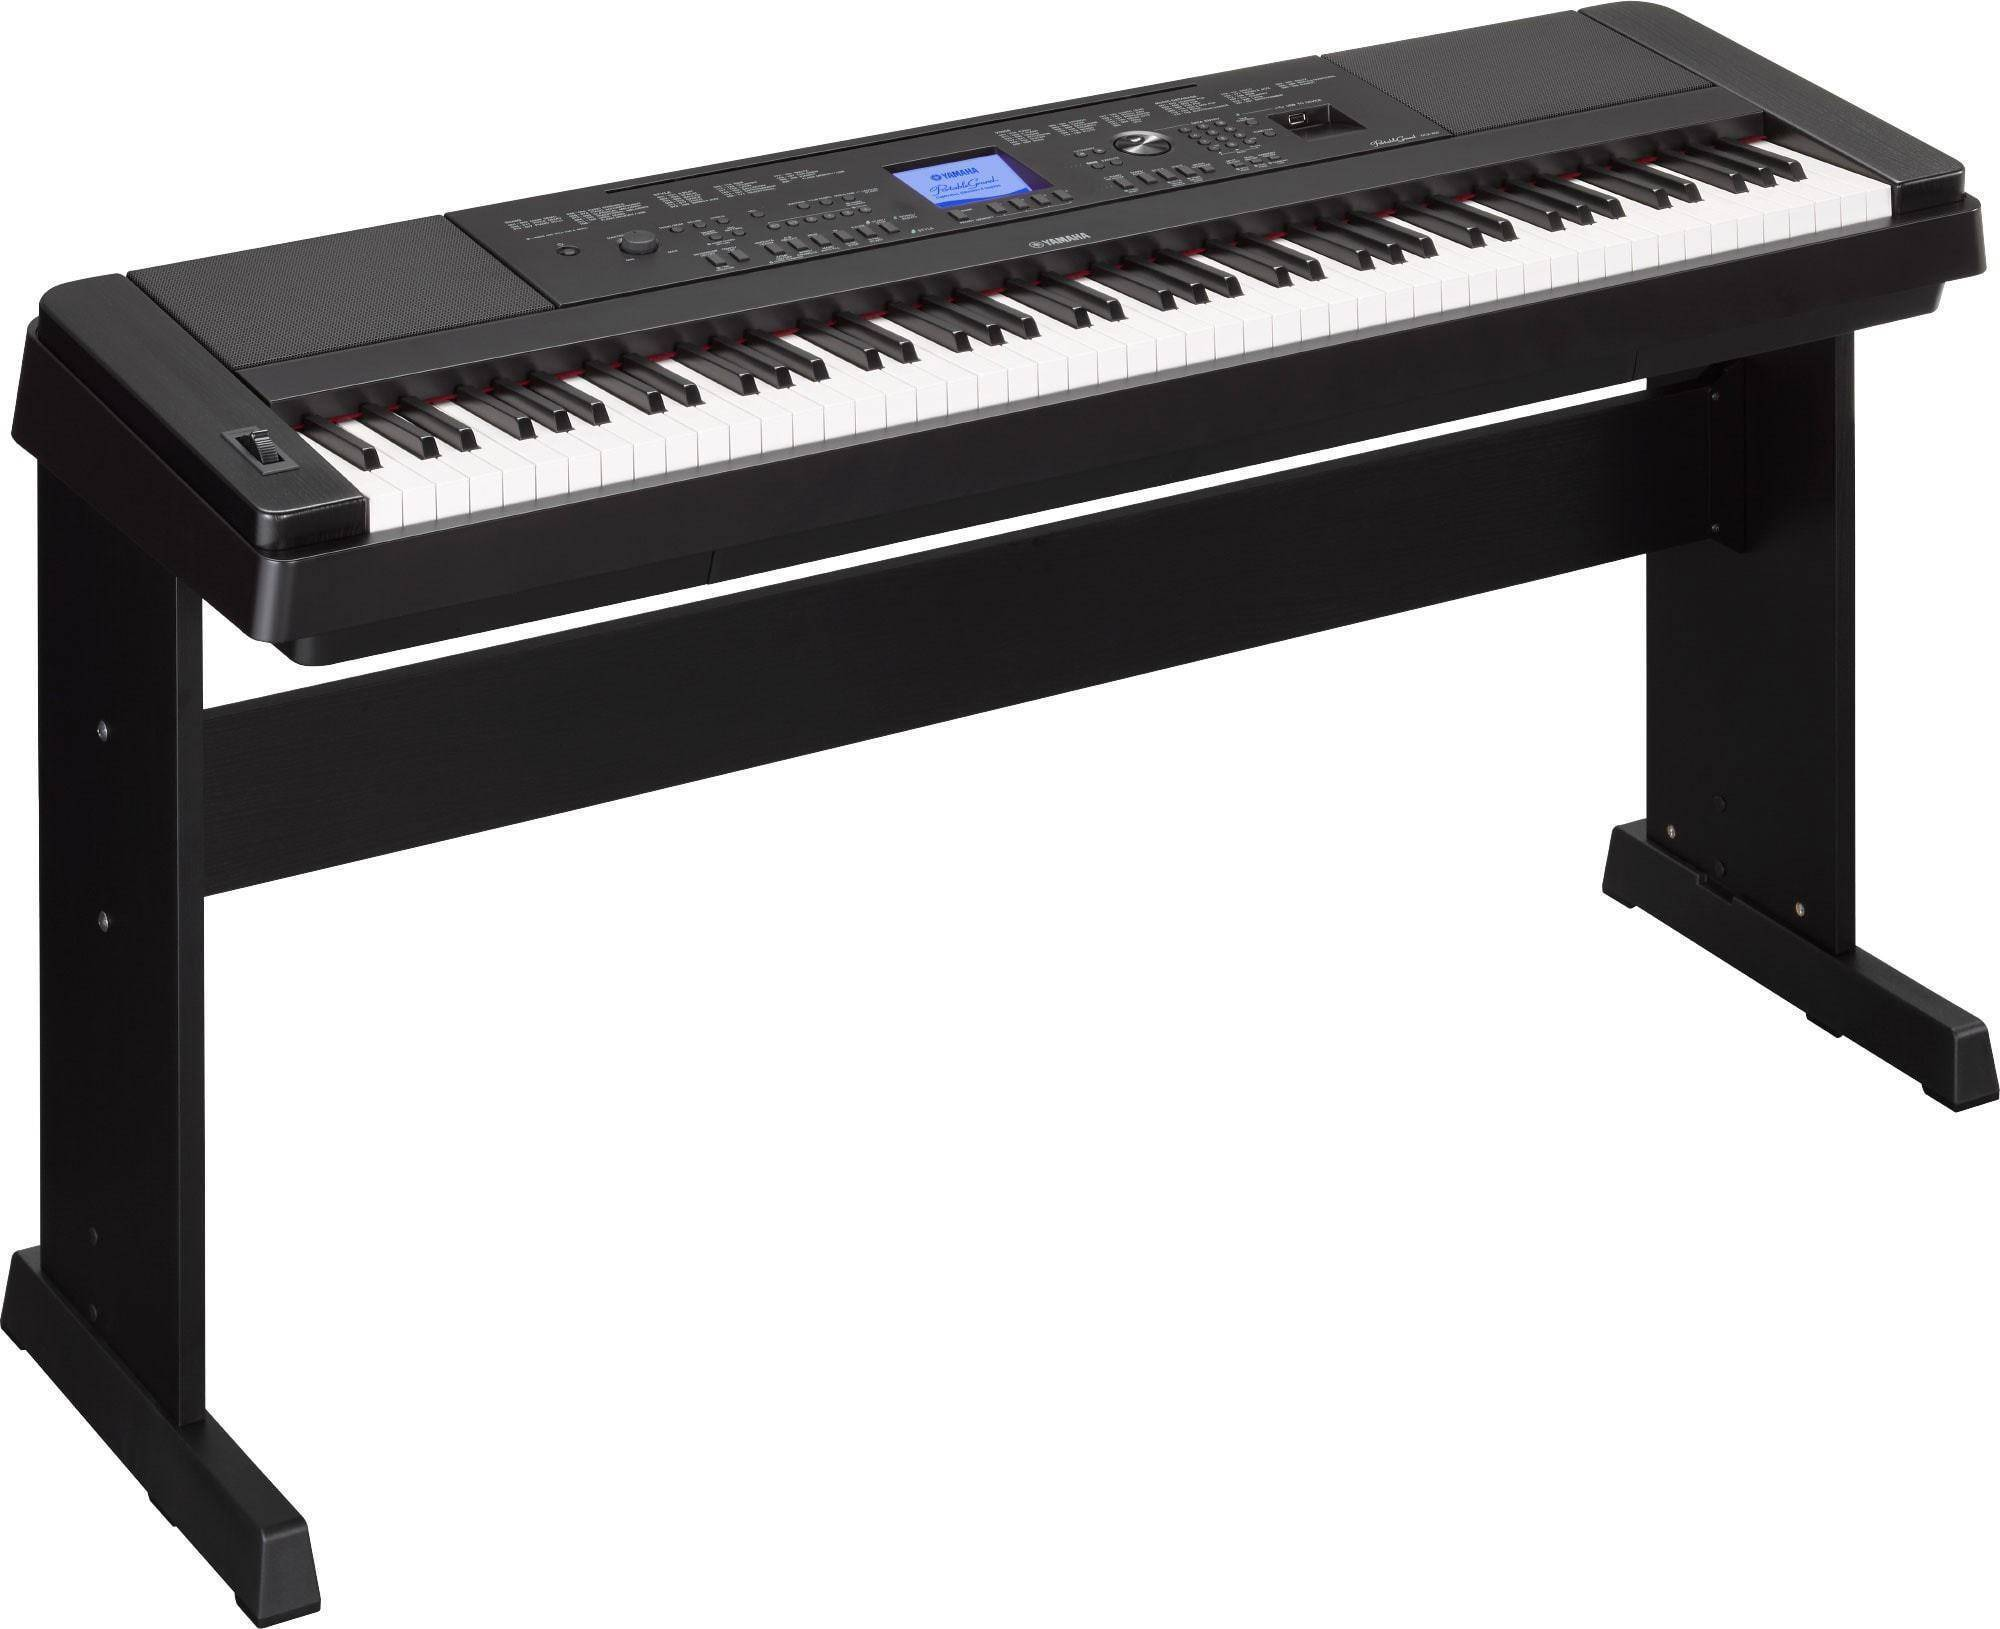 Piano Yamaha Grand DGX-660